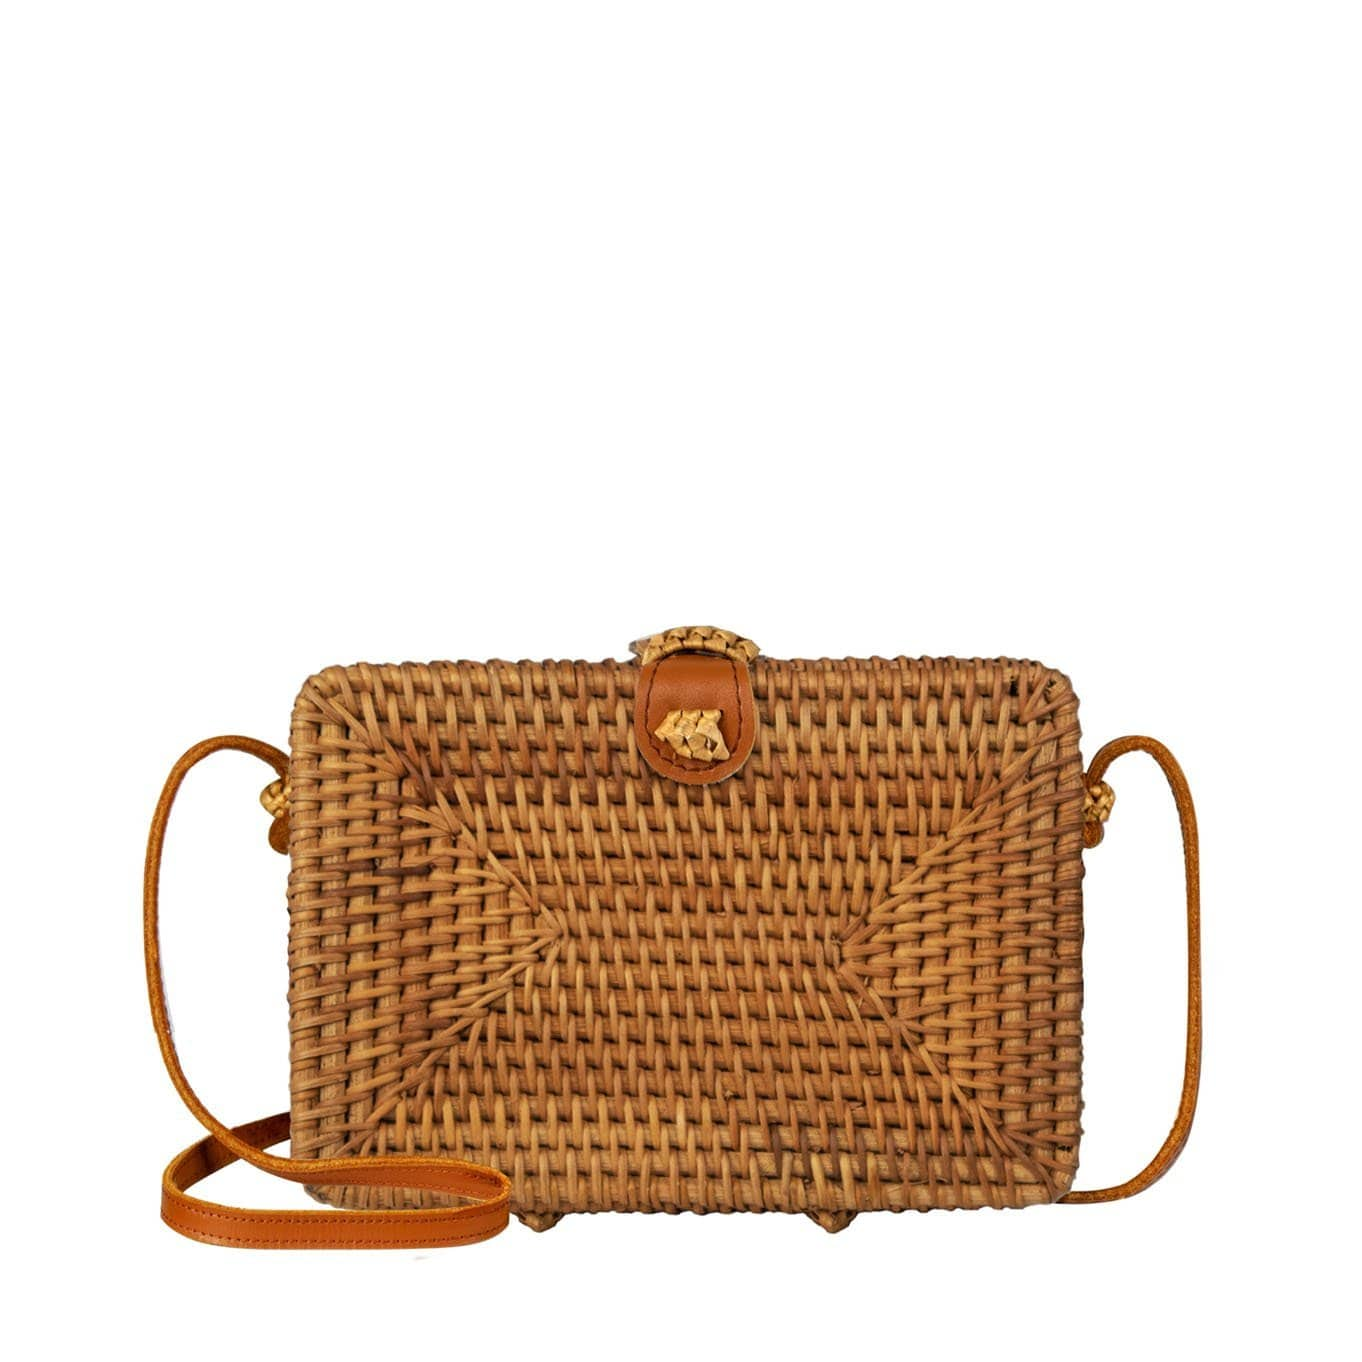 Made Terra Straw bags Genuine Leather Square Rattan Purse | Summer Essential Hand Woven Wicker Women Crossbody Bag